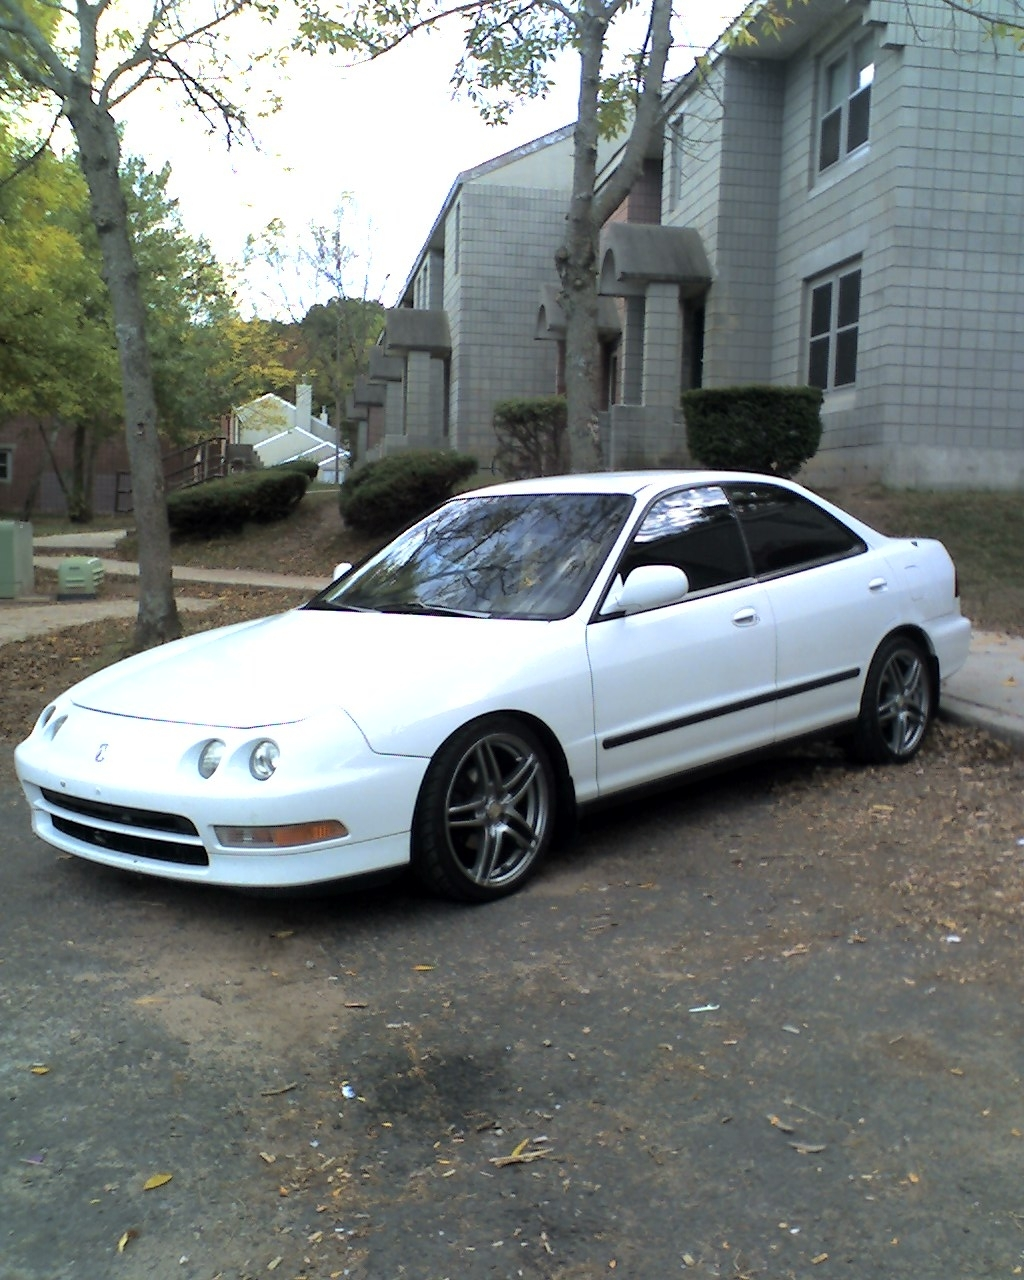 Sammy49 1994 Acura IntegraLS Sedan 4D Specs, Photos